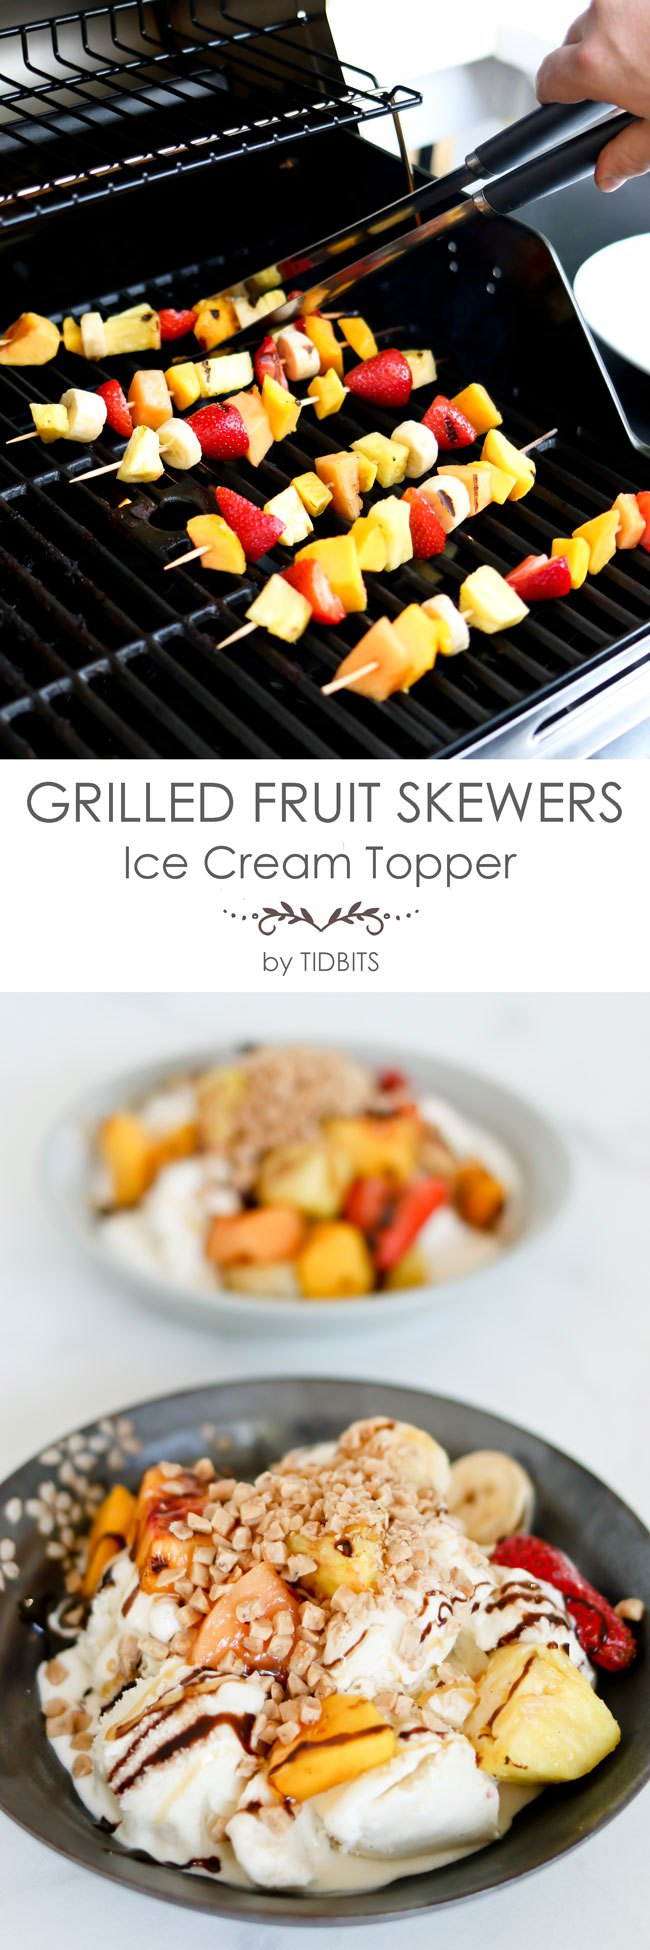 Grilled fruit skewers are a wonderful seasonal treat, and taste even better on…